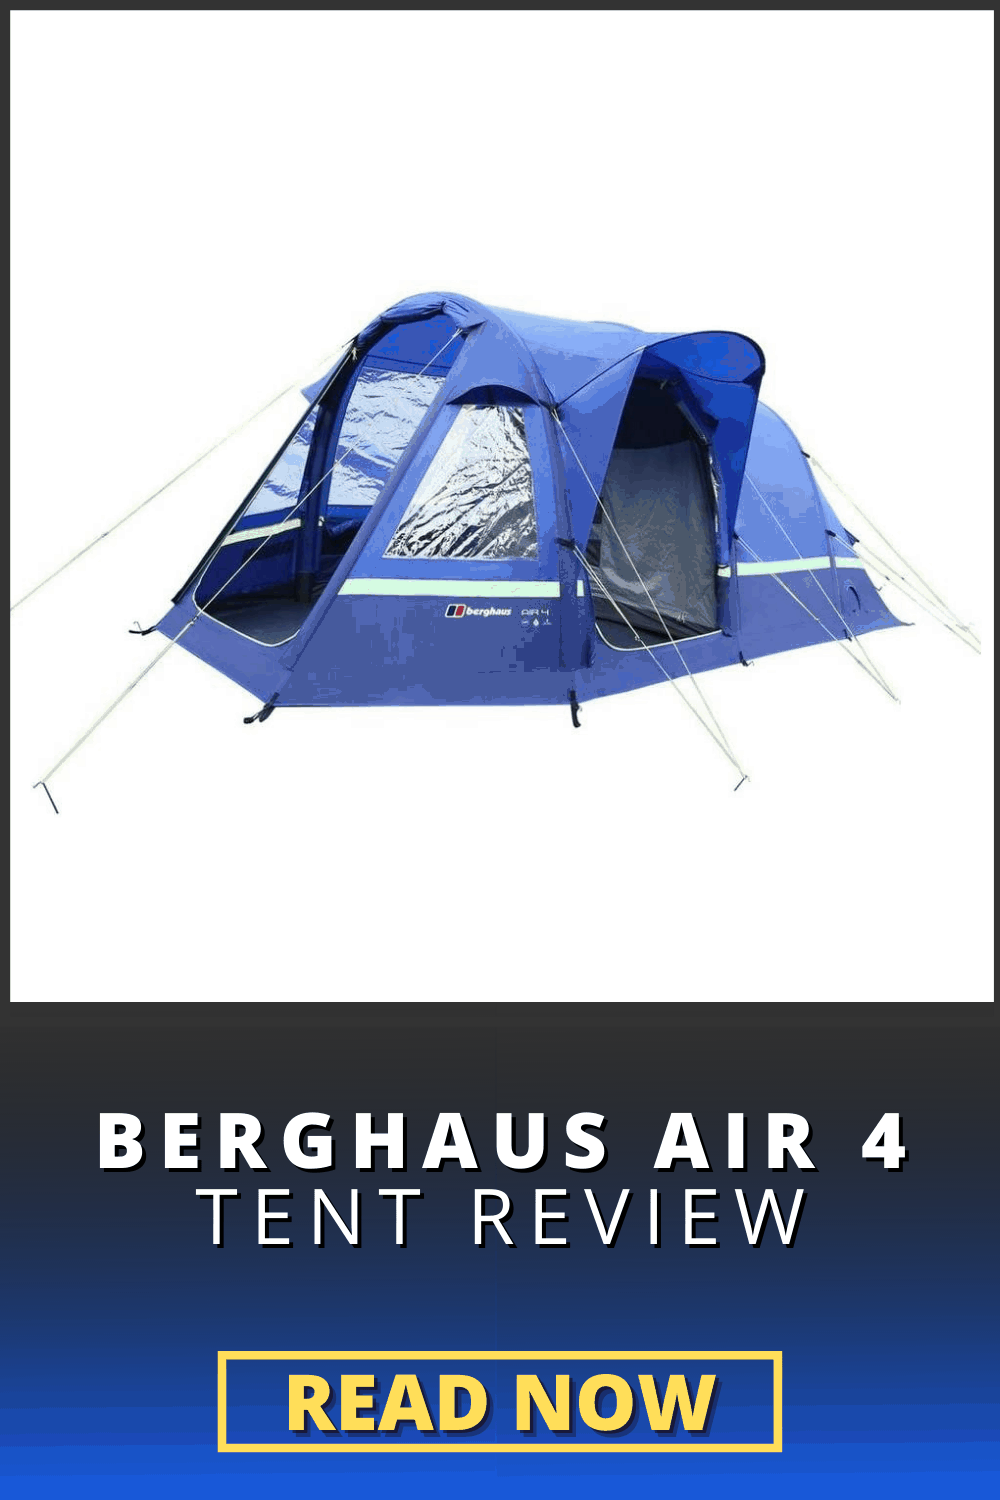 Berghaus Air 4